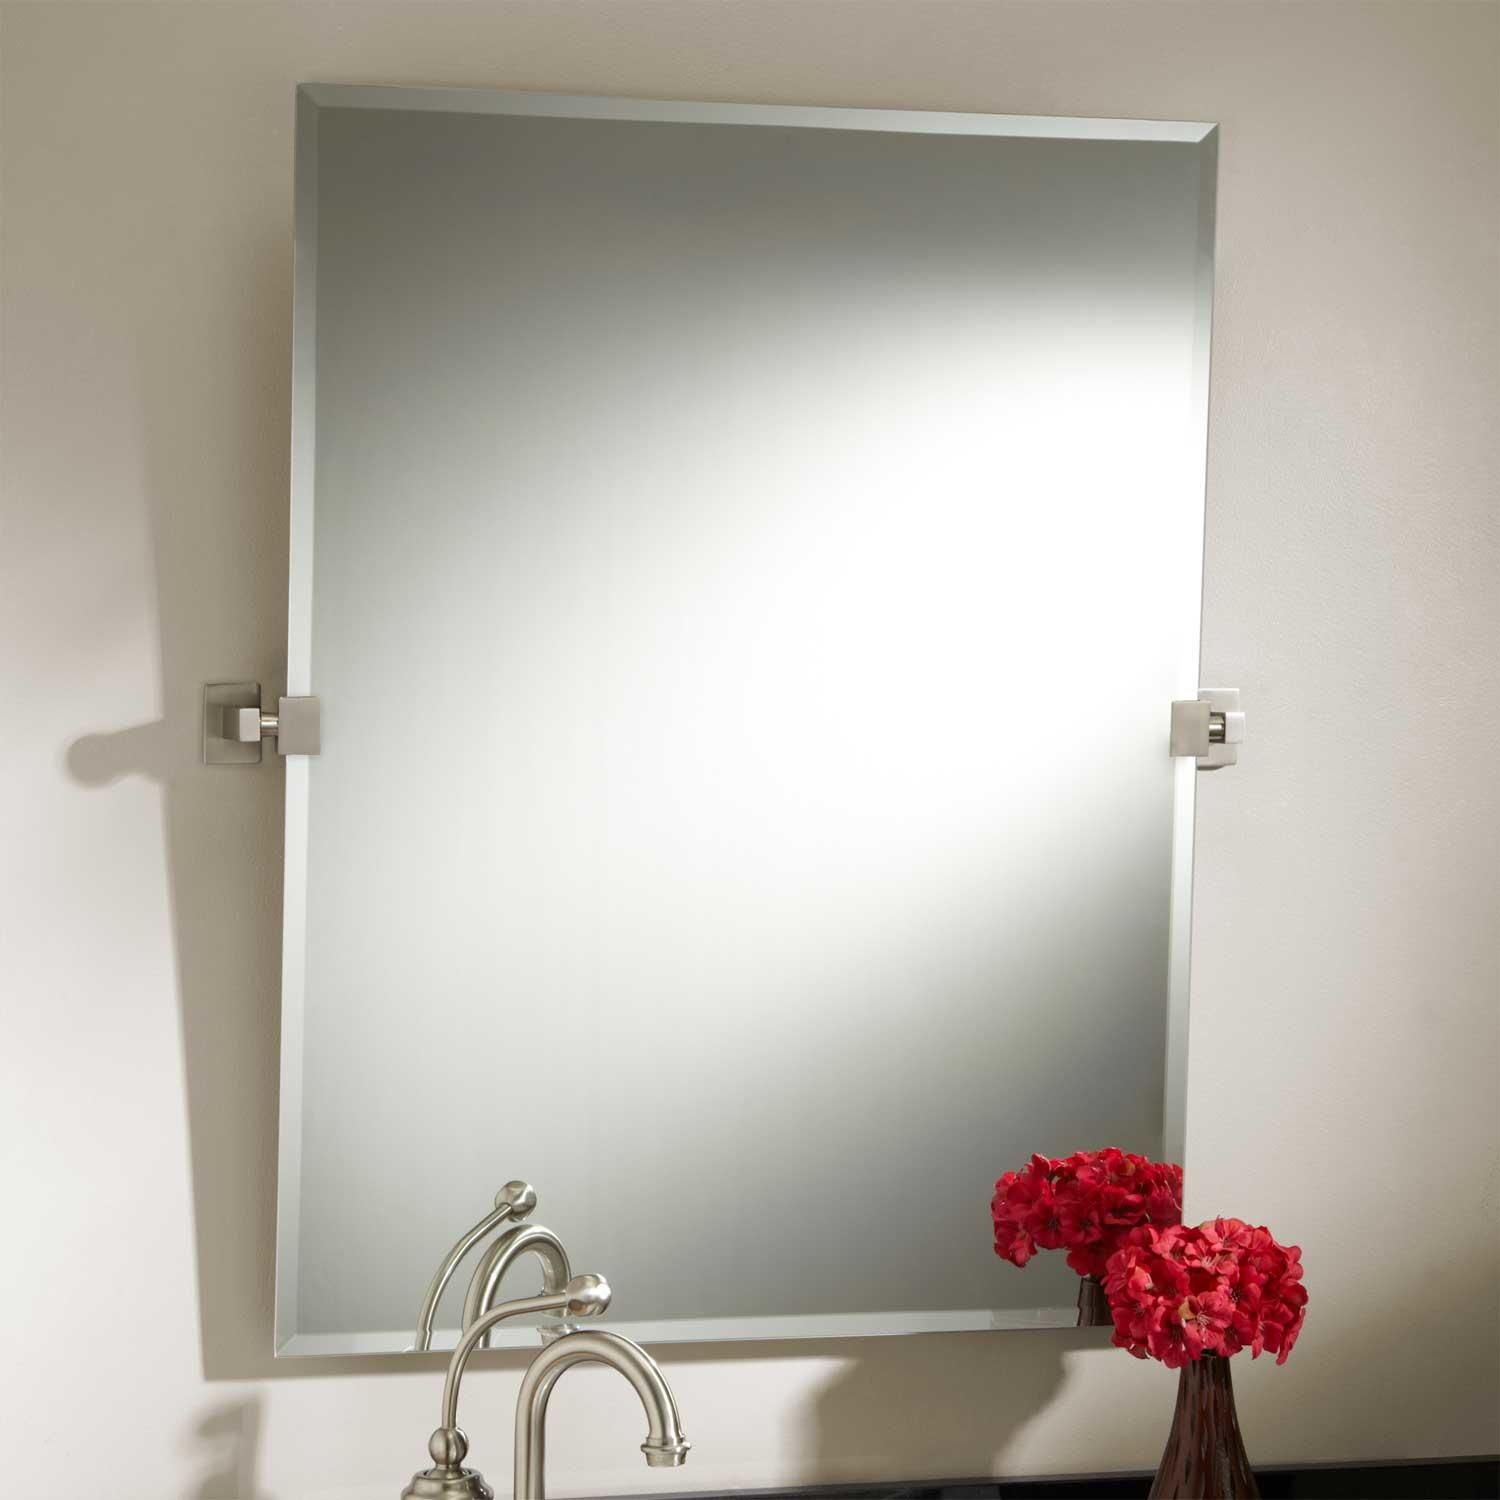 Decorative Brushed Nickel Mirror 19